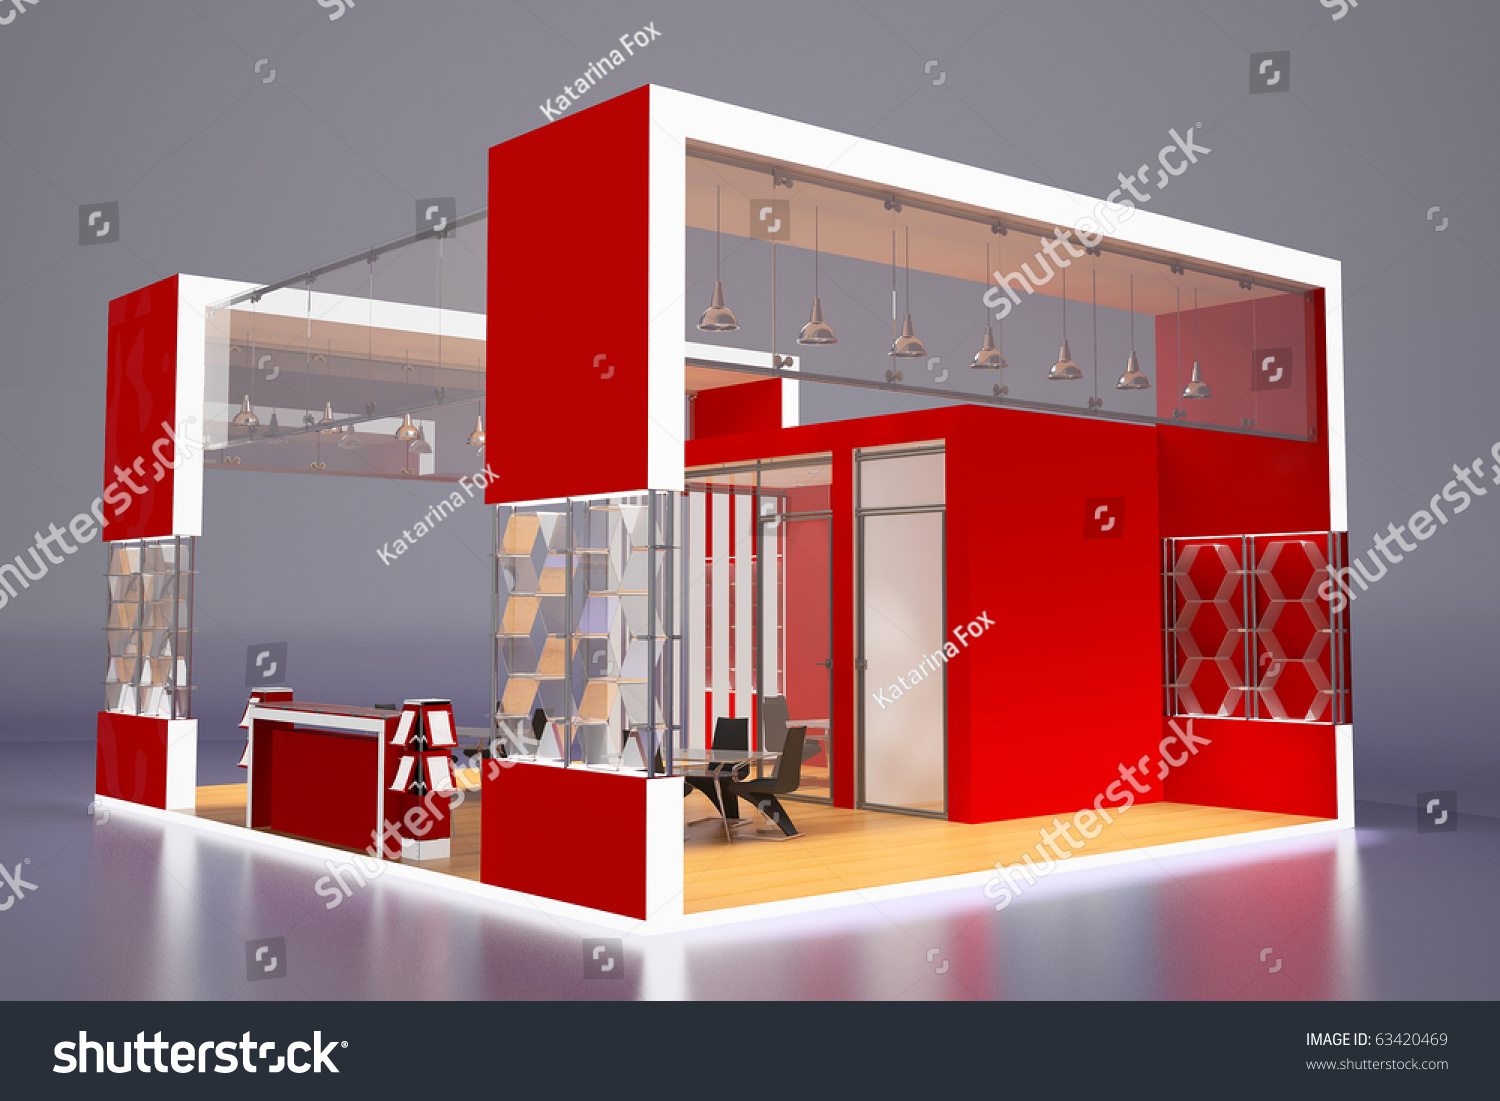 Modern Exhibition Stand Uk : D render modern red exhibition stand stock illustration